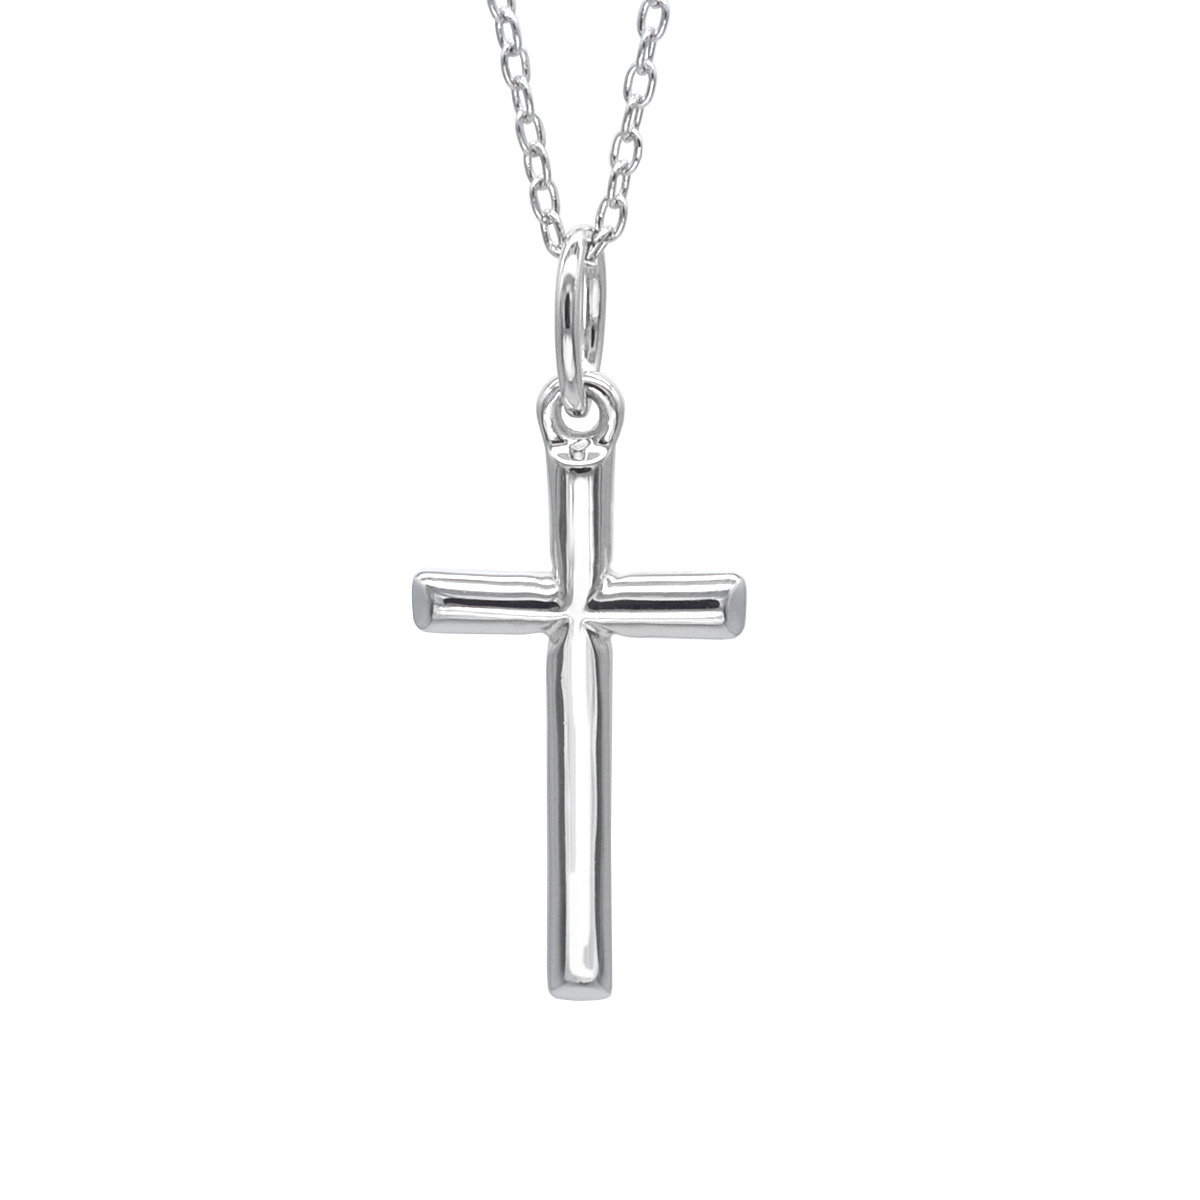 Trinity-926 Sterling silver Pendant